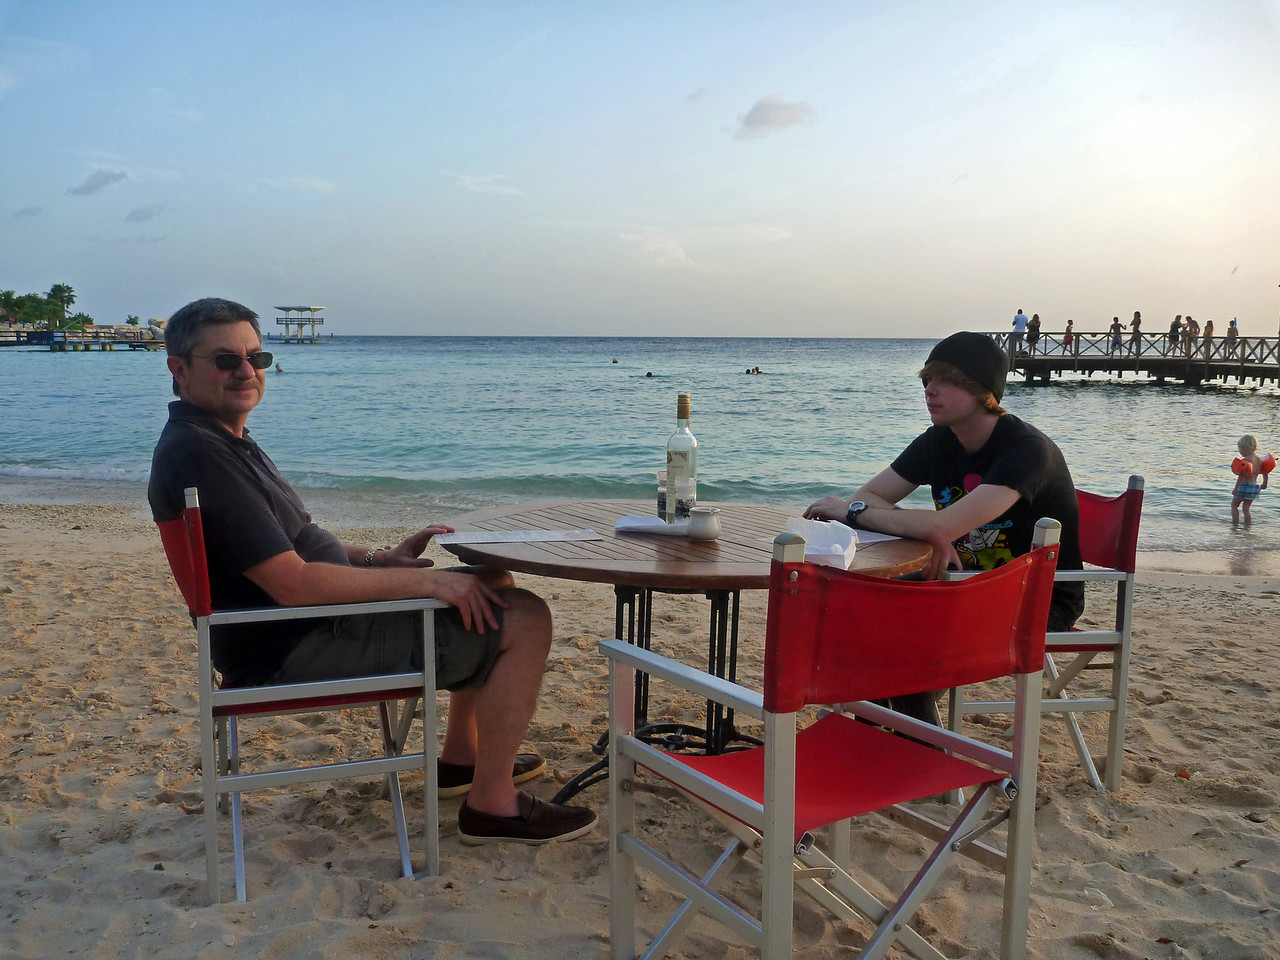 Dining on the beach in Curacao